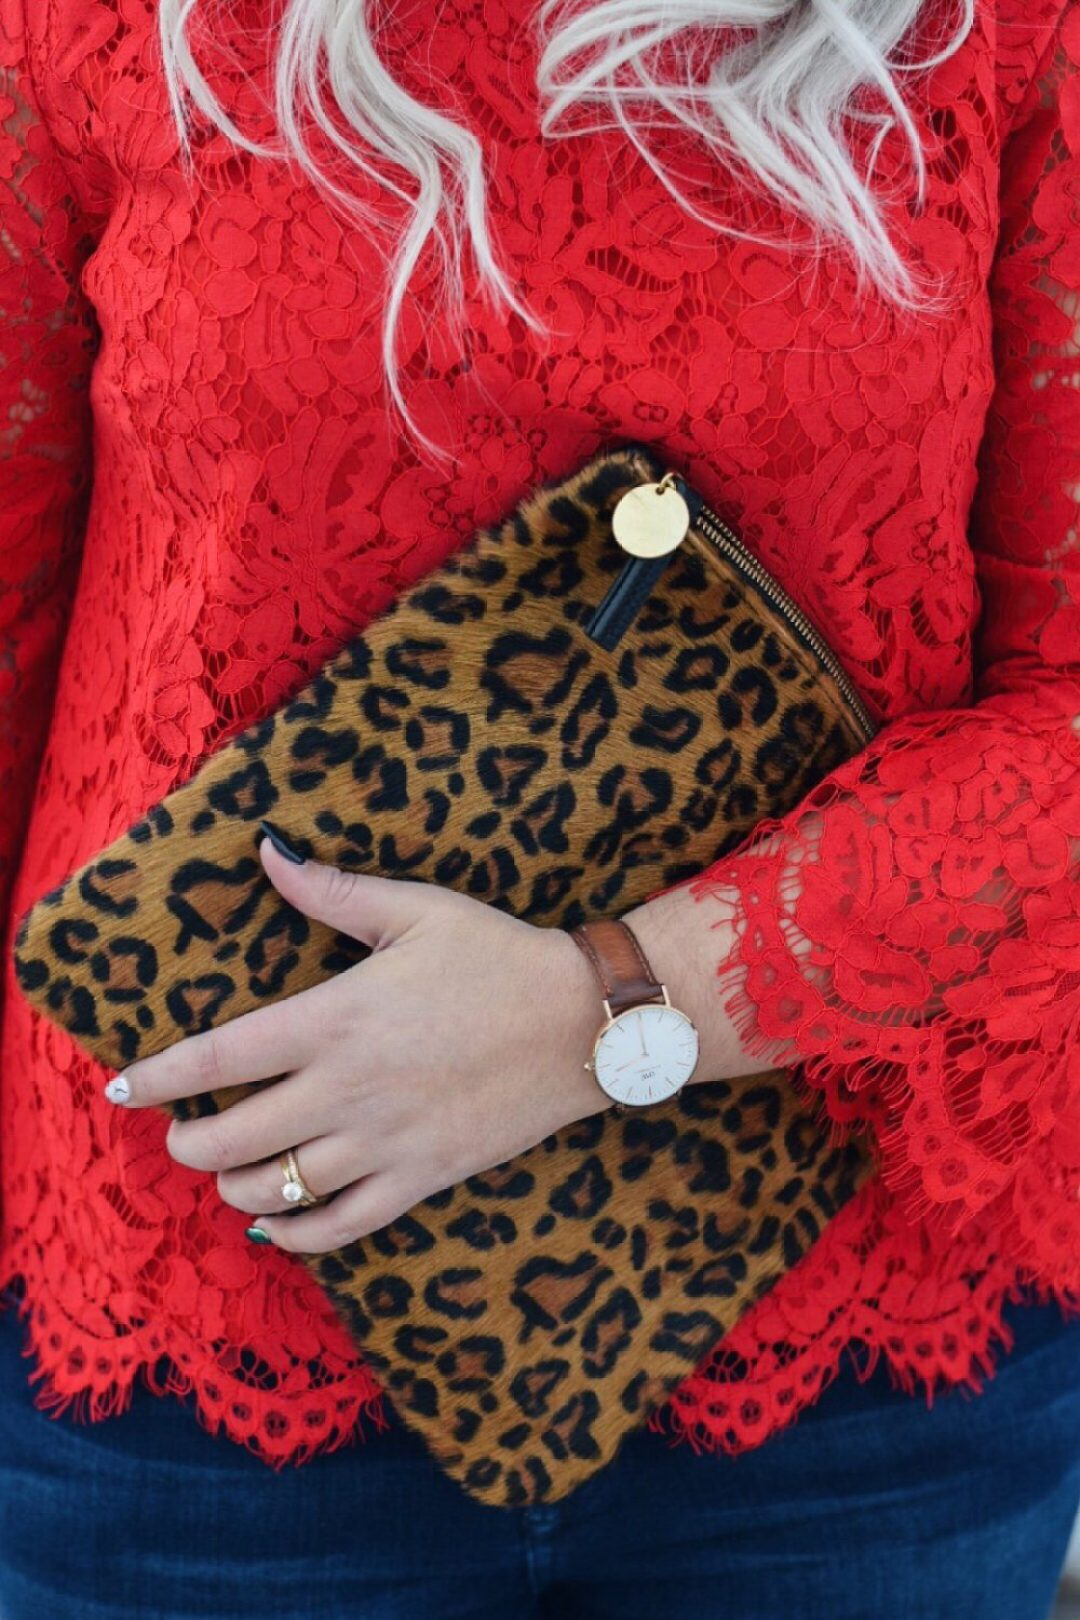 Valentine's Day OOTD red lace top & leopard clutch